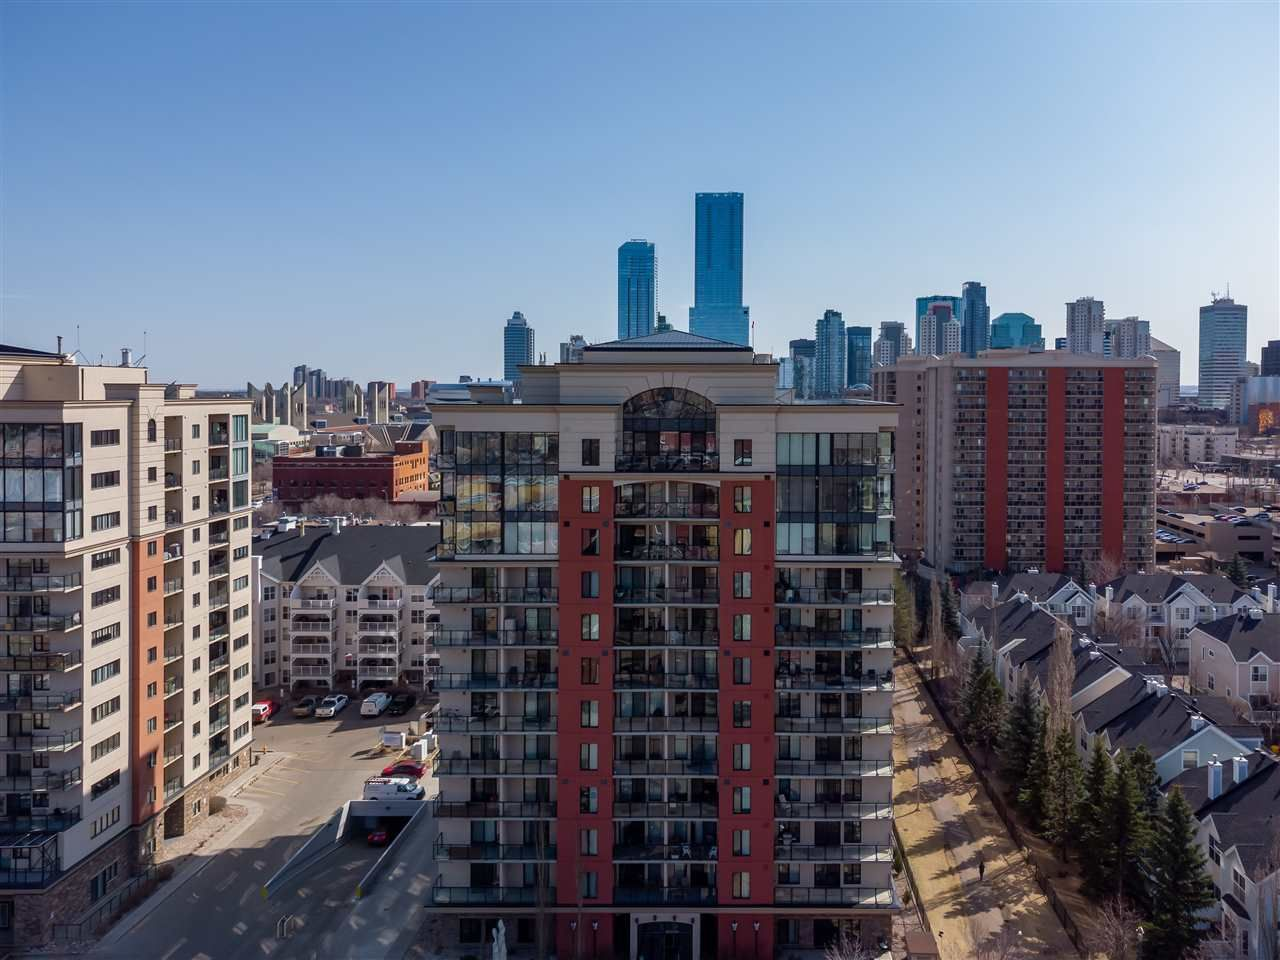 Main Photo: 1010 10303 111 Street in Edmonton: Zone 12 Condo for sale : MLS®# E4237946